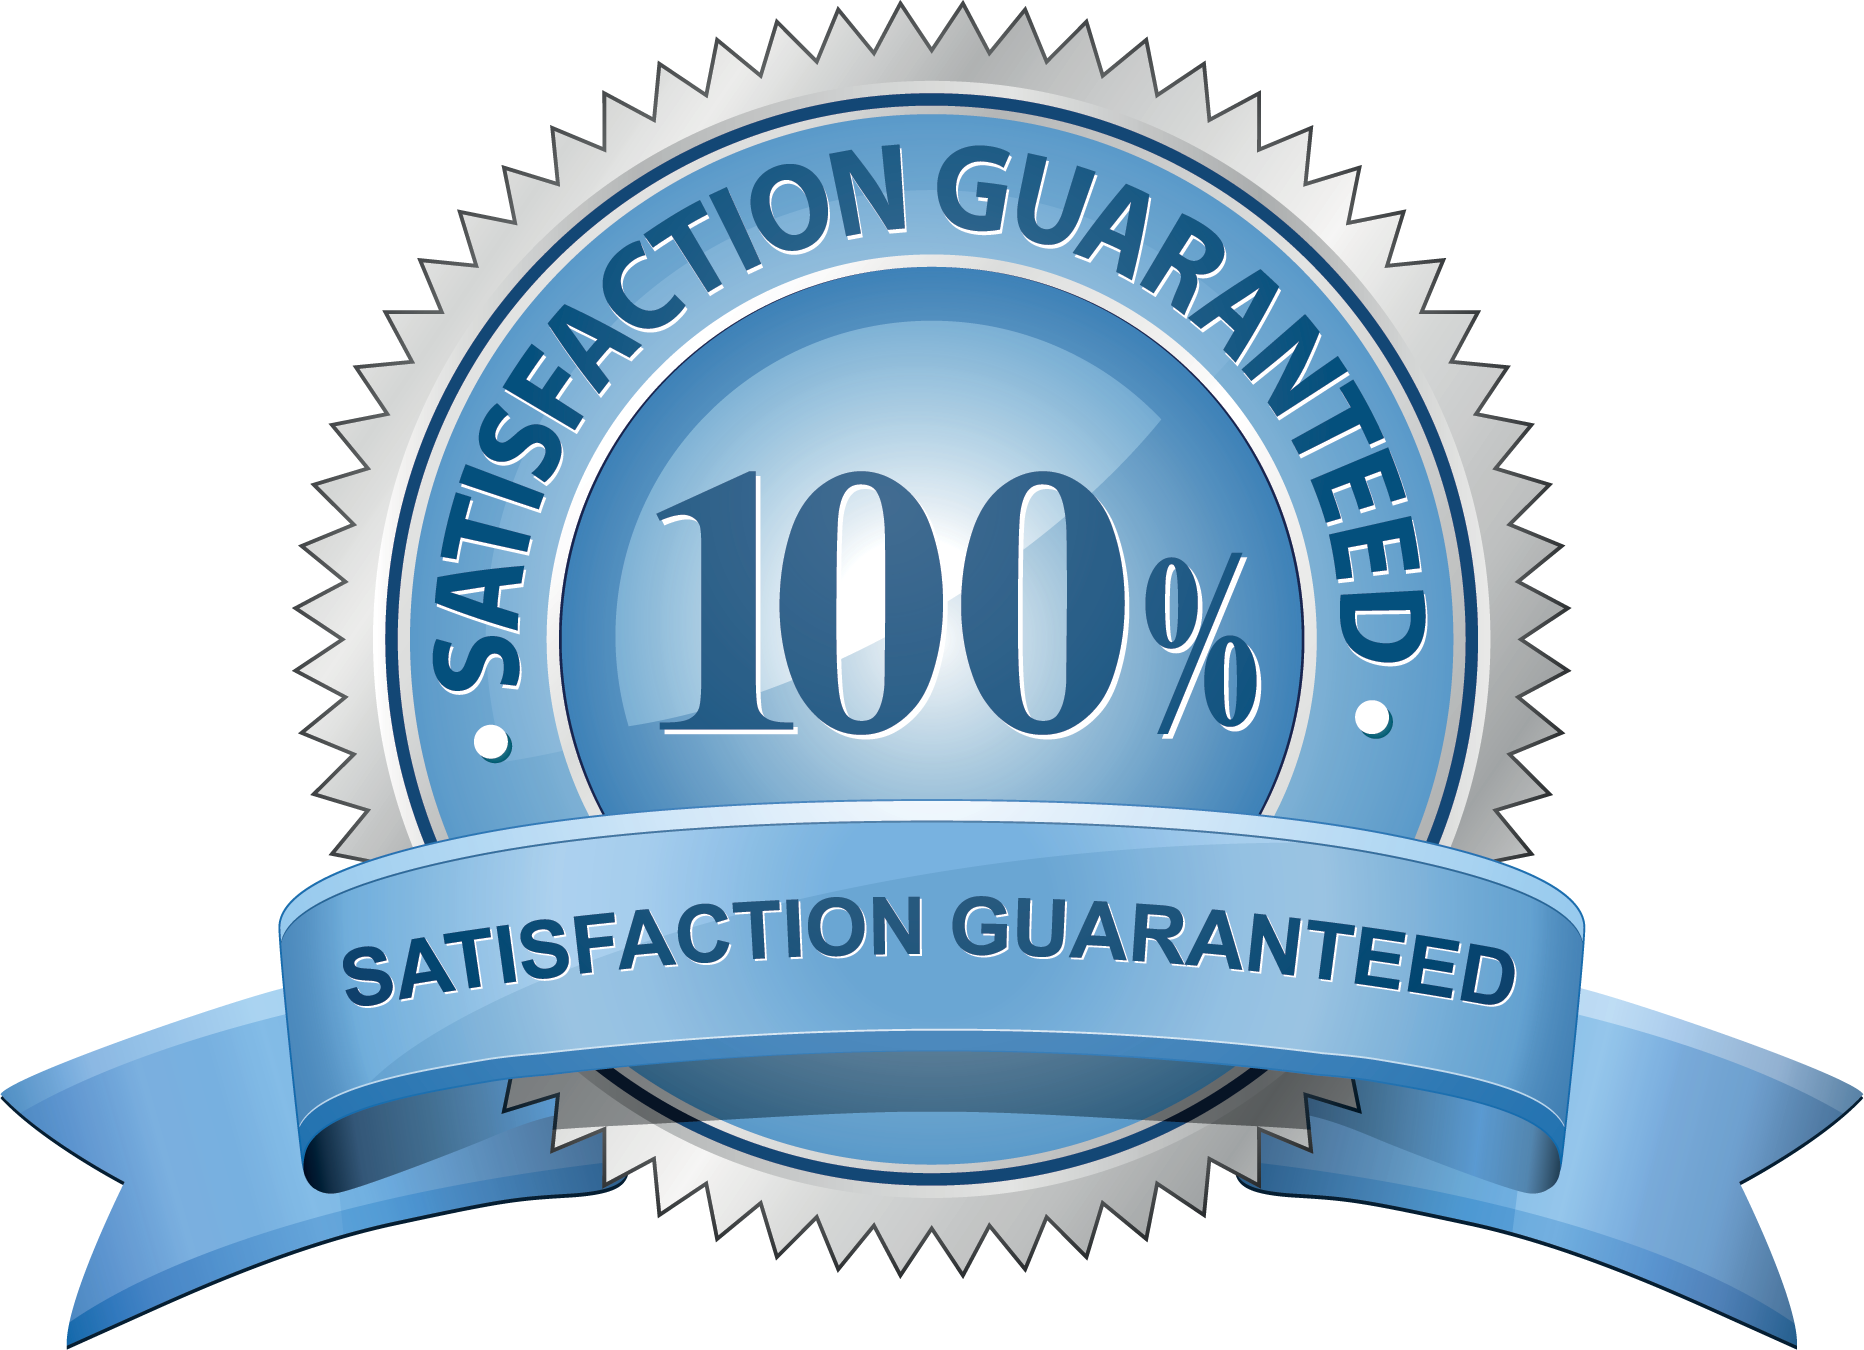 satisfaction guarantee banner